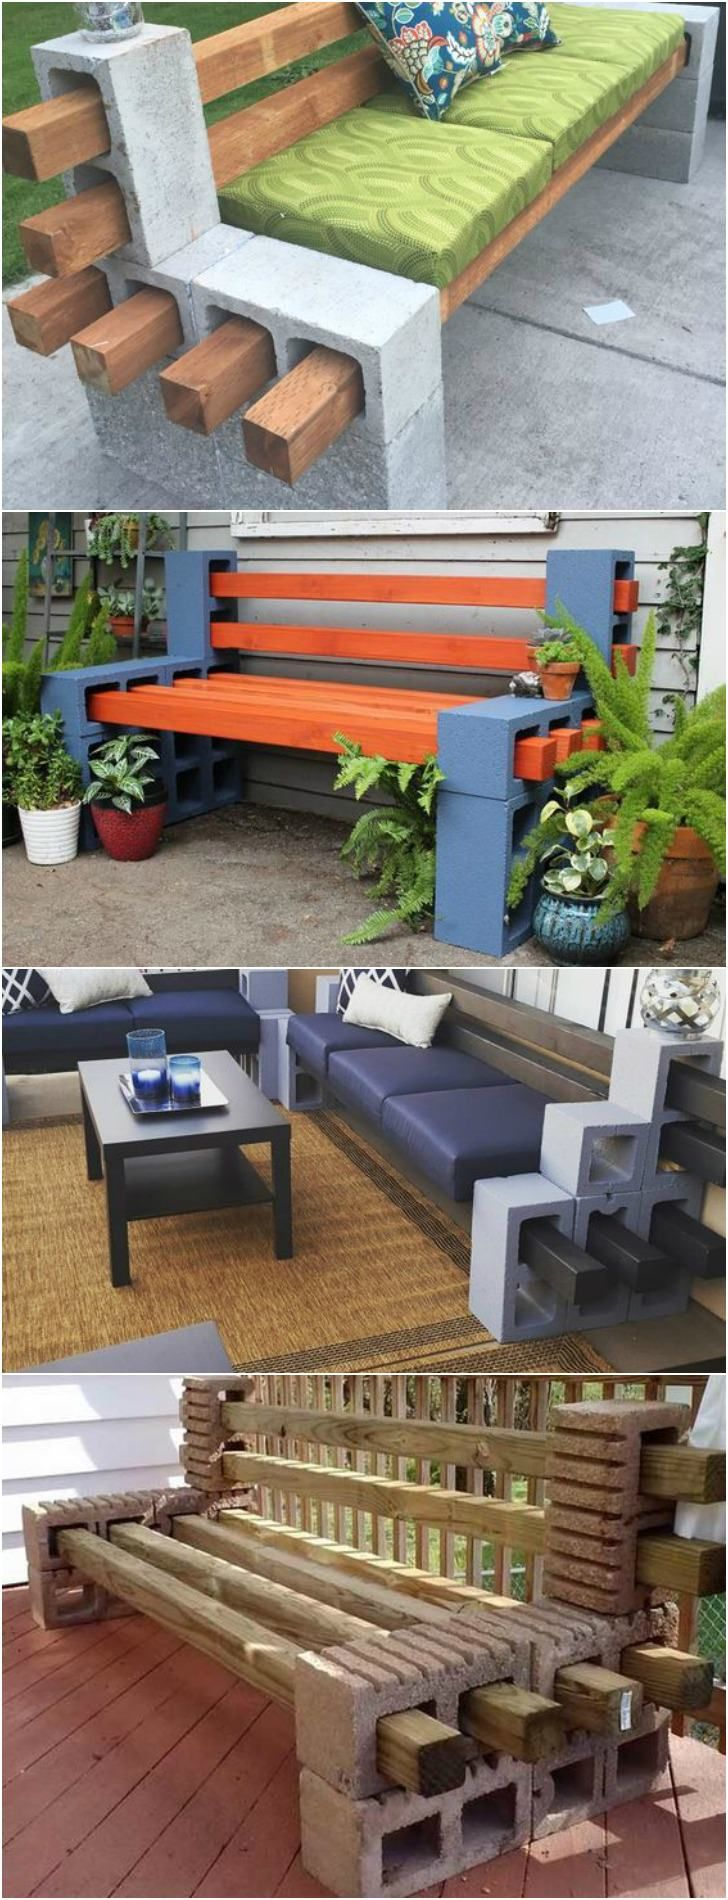 cool How to Make a Bench from Cinder Blocks  10 Amazing Ideas to Inspire You 36daf0304bb